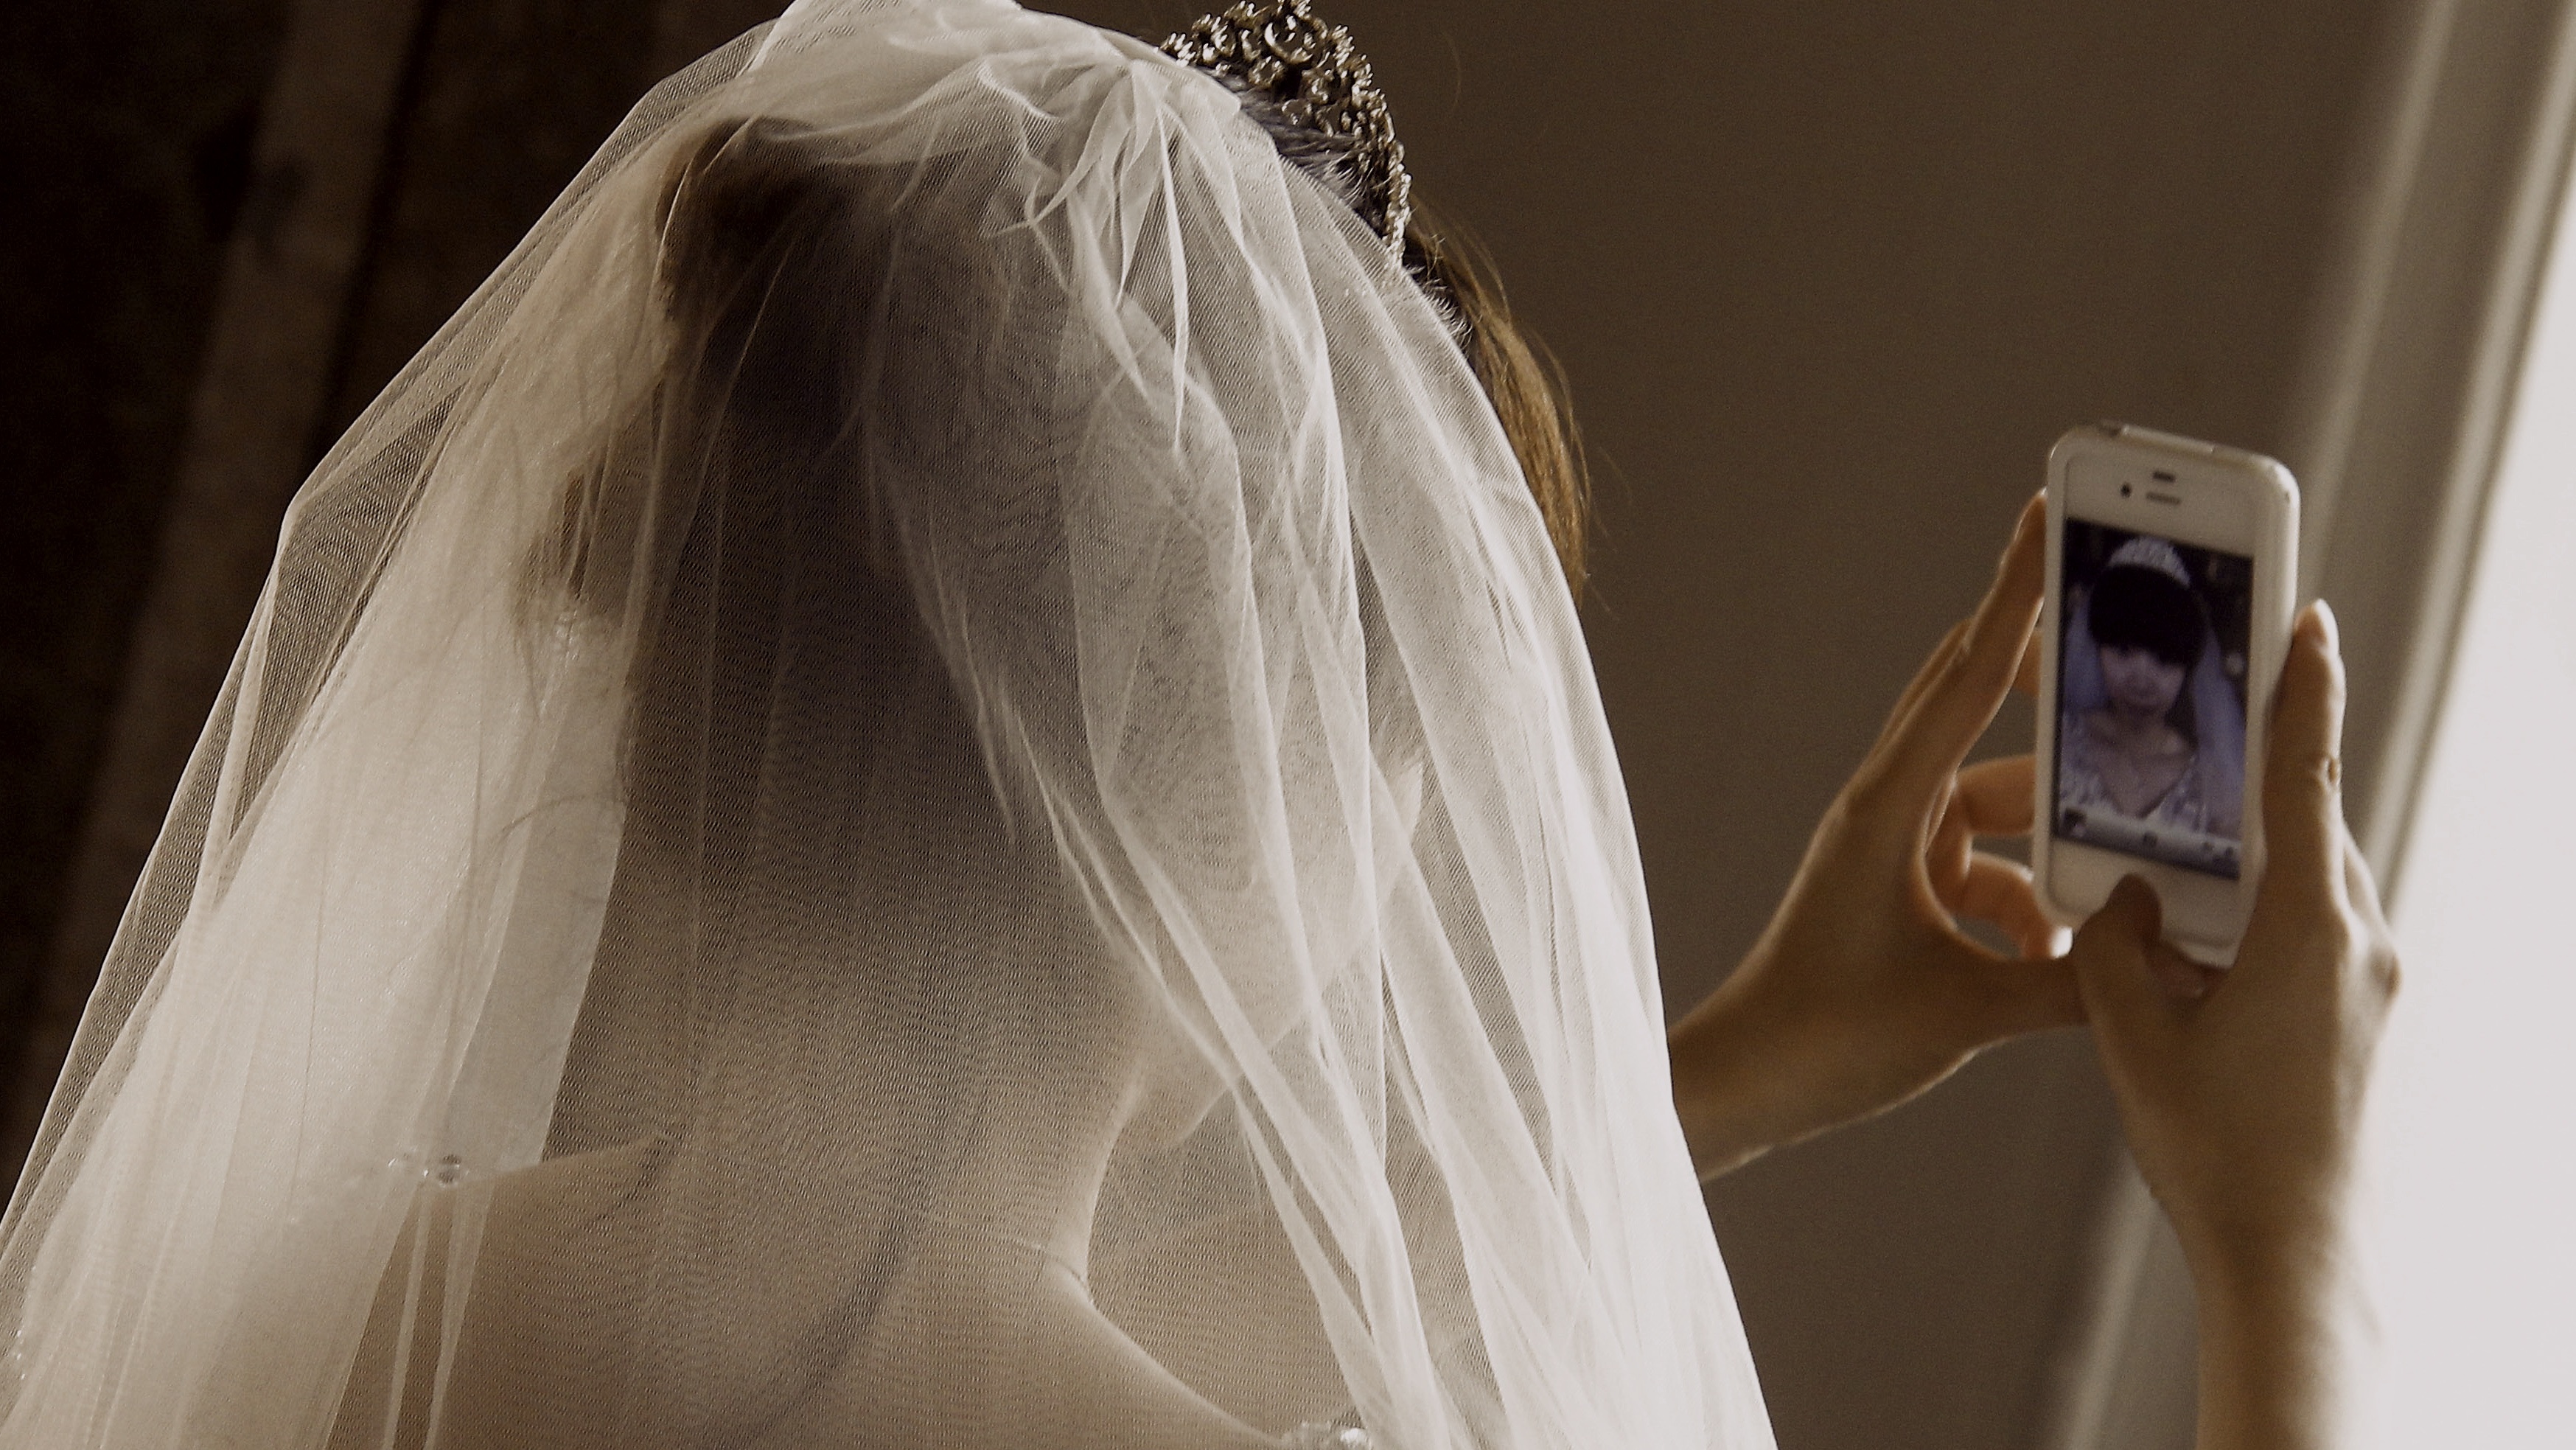 A Chinese bride takes a self portrait before her symbolic wedding in Fuessen